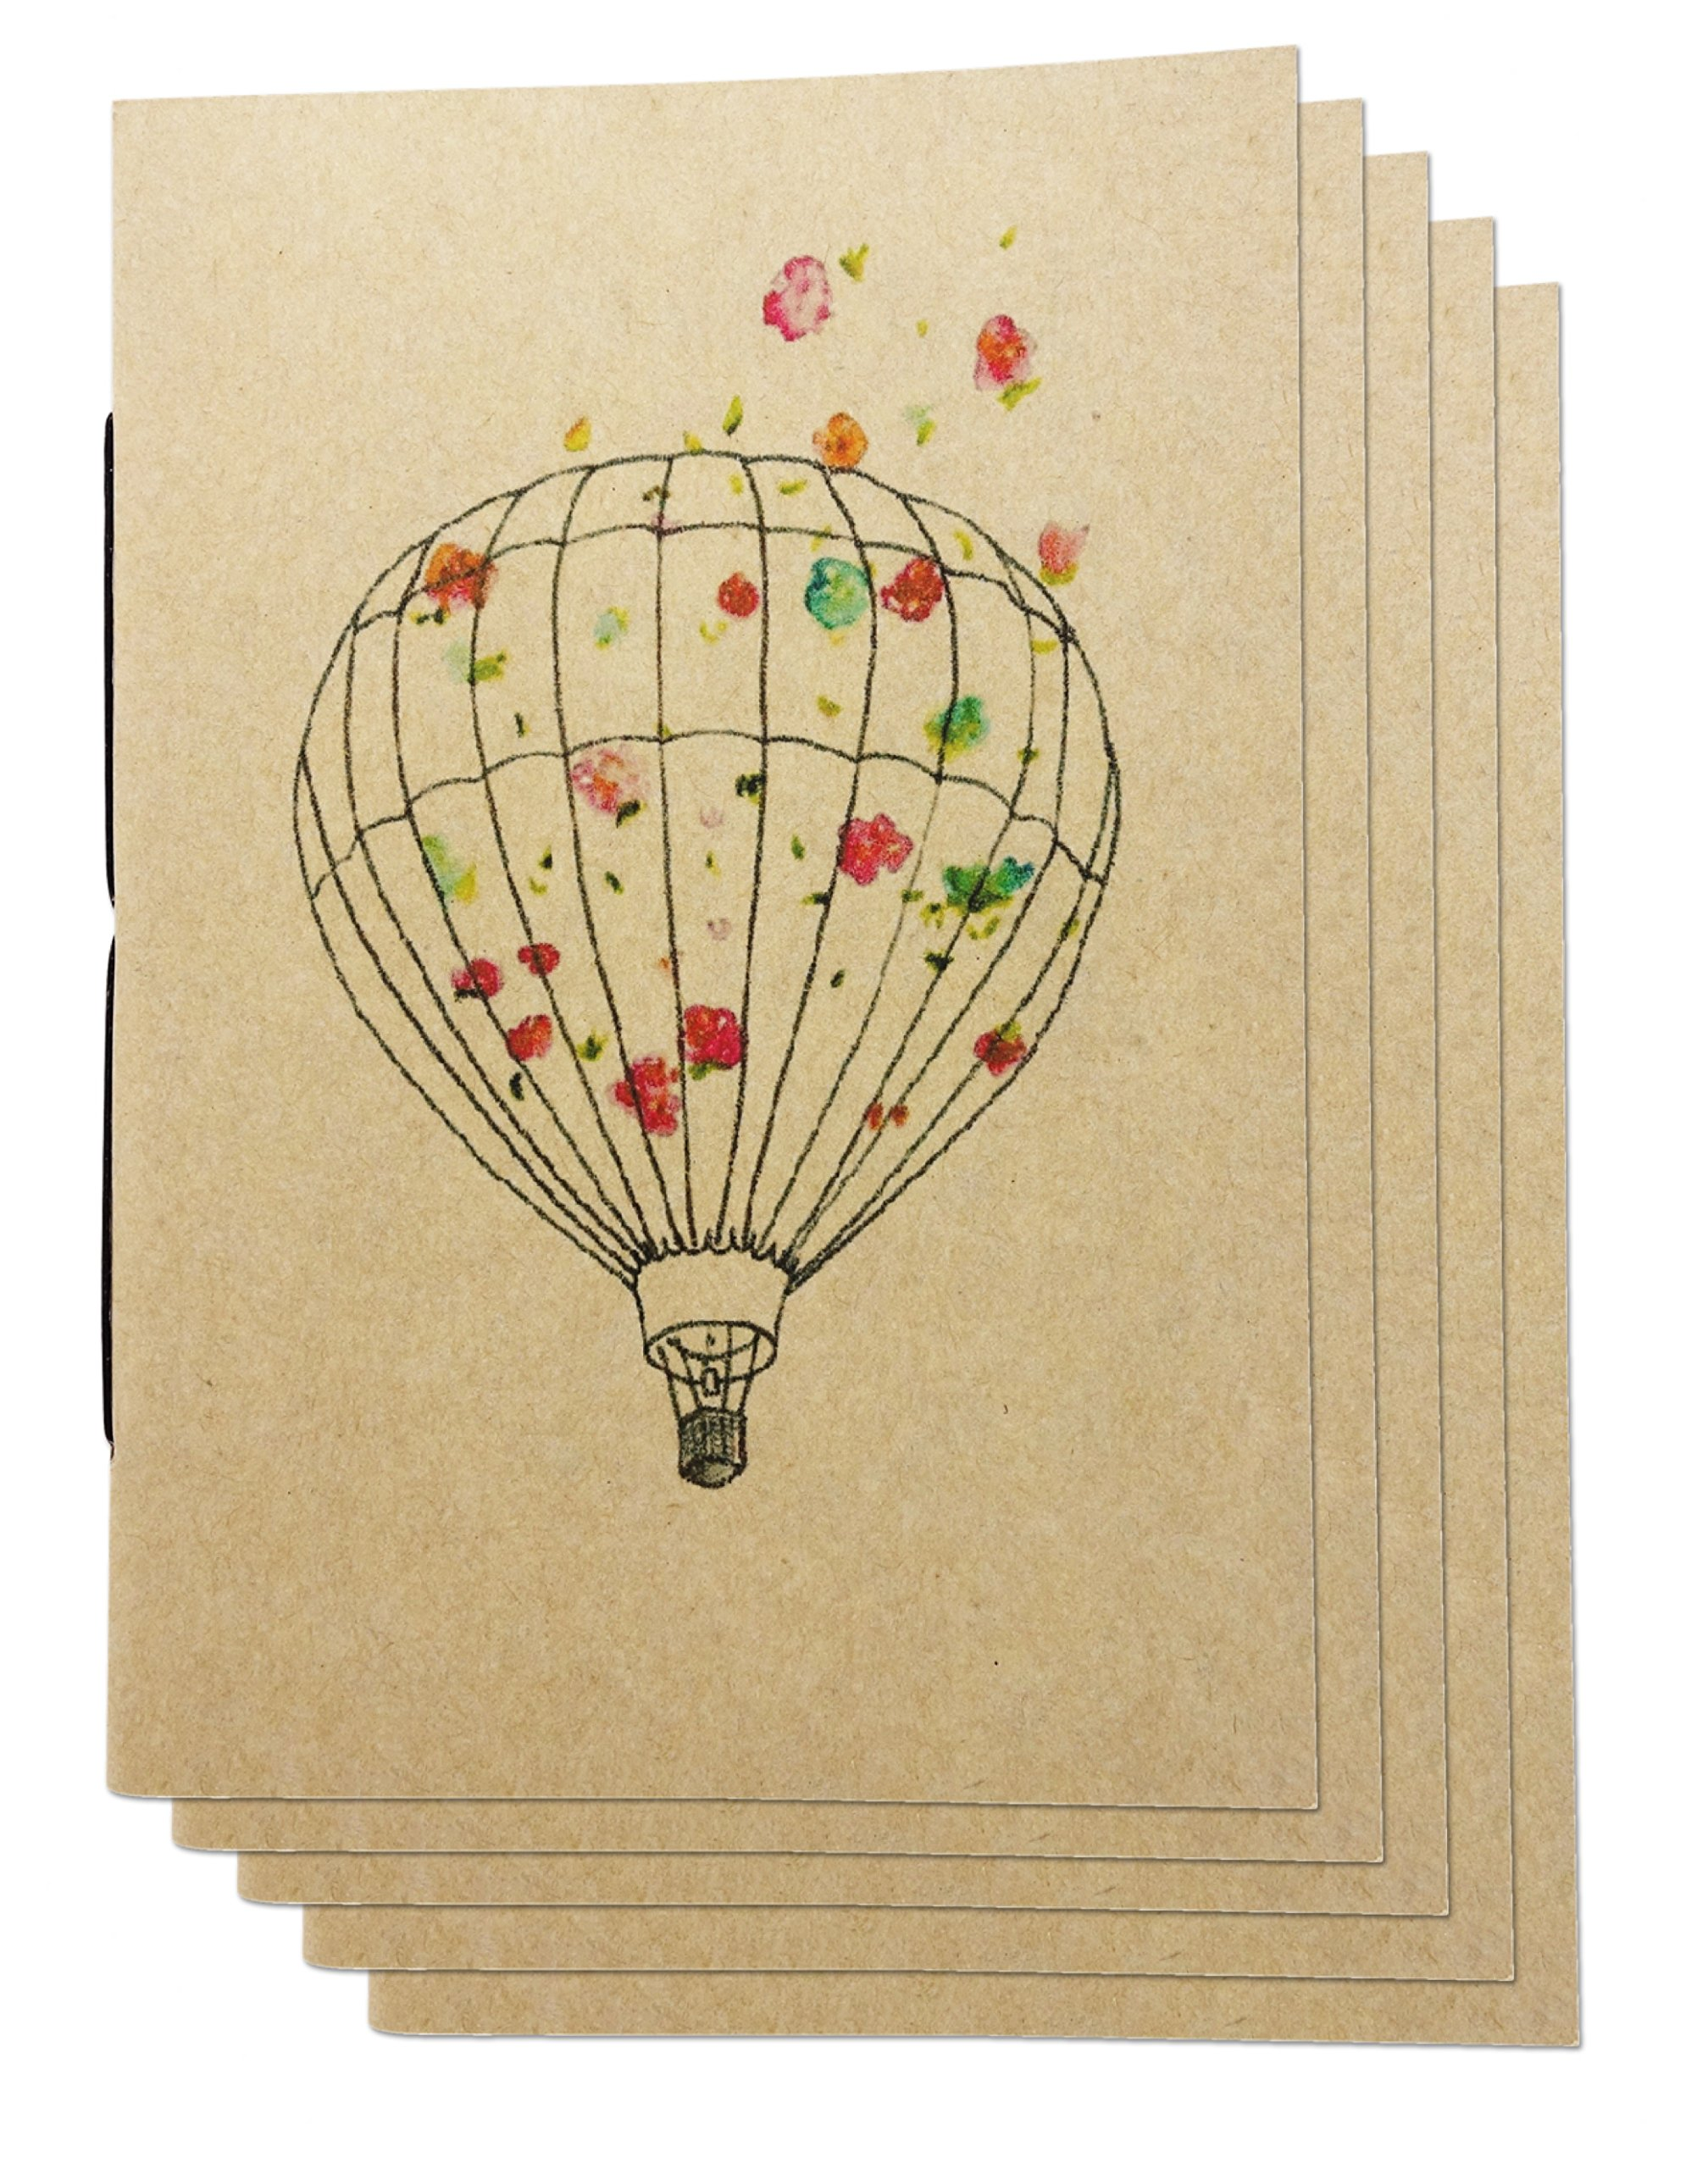 (Set of 5) A6 Dot Grid Handmade 4 x 5.75 inches Notebook/Balloon Flower Cover/60 Dot Page   Lay Flat Binding   Cream Paper